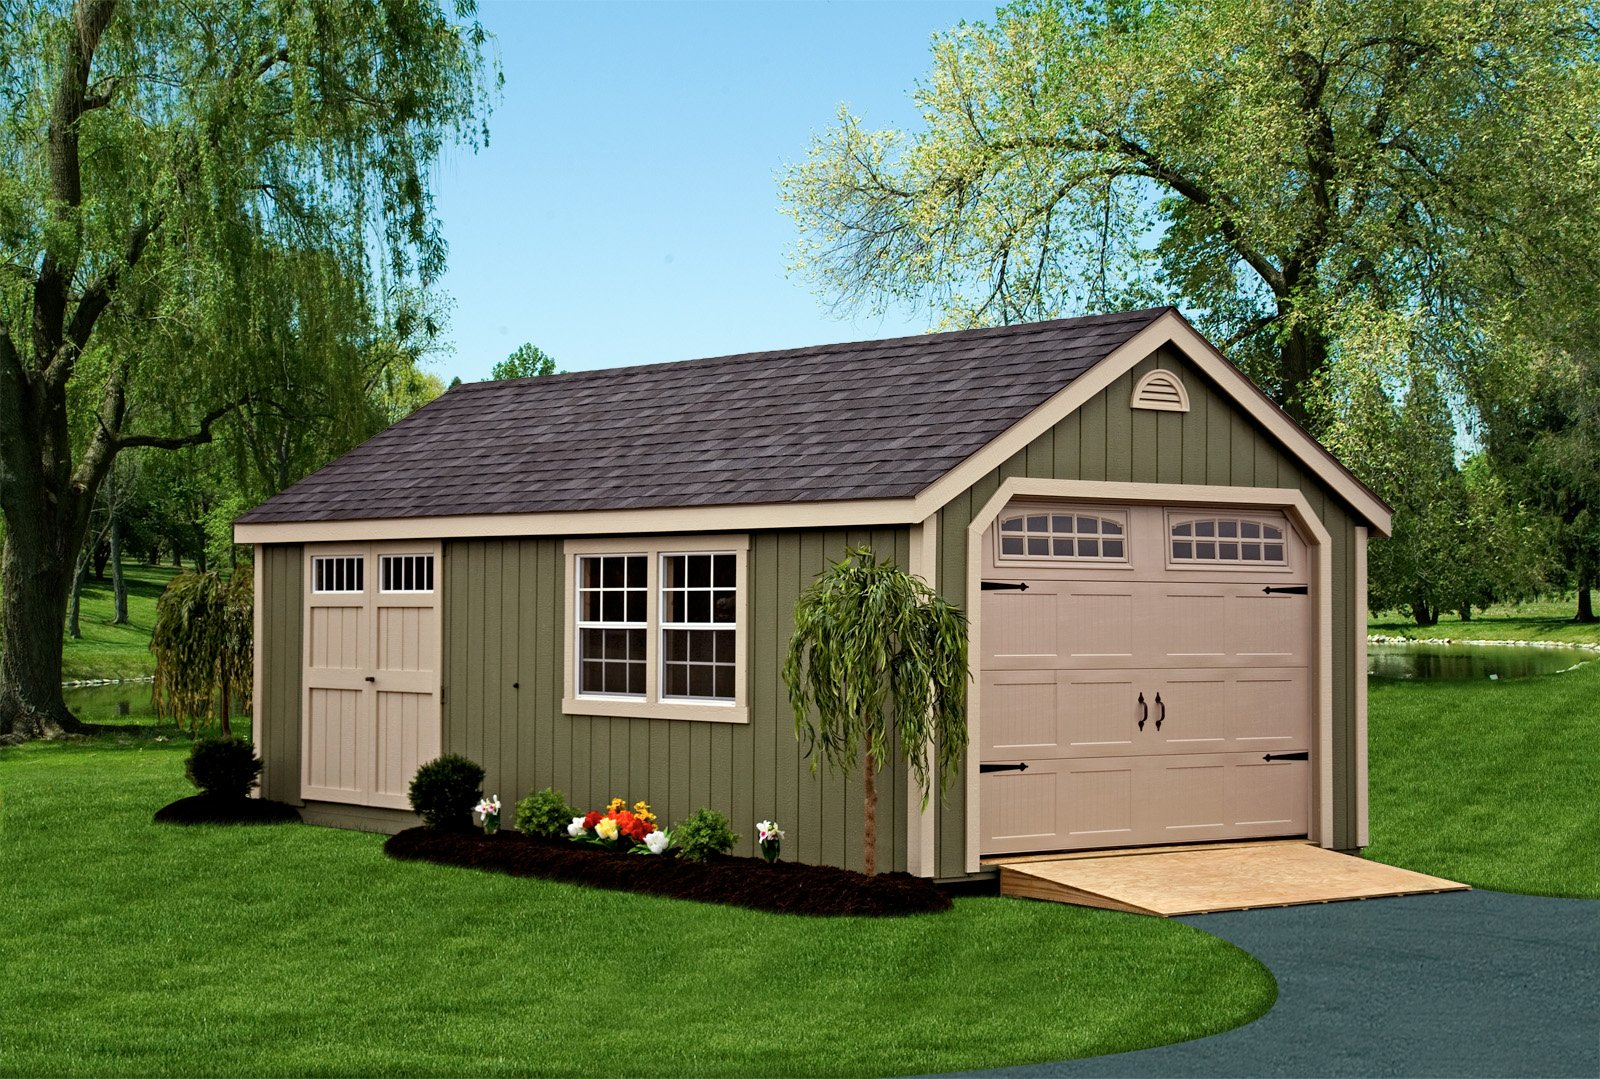 Deluxe Garage 10x16 The Shed Haus